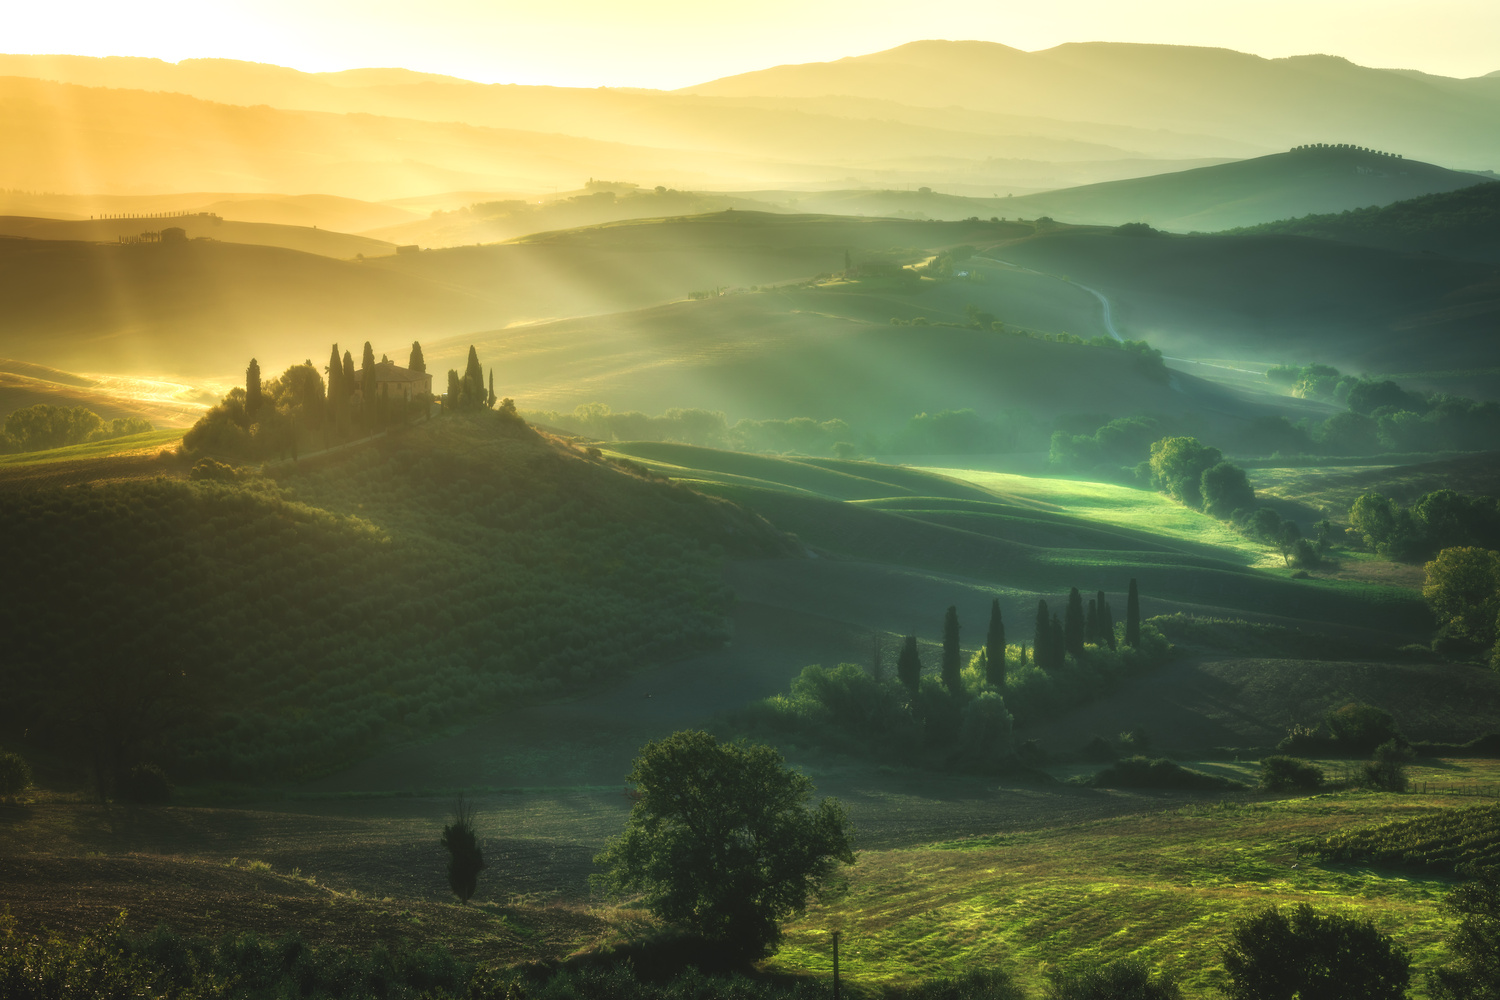 Tuscan Dreams by Jean Claude Castor